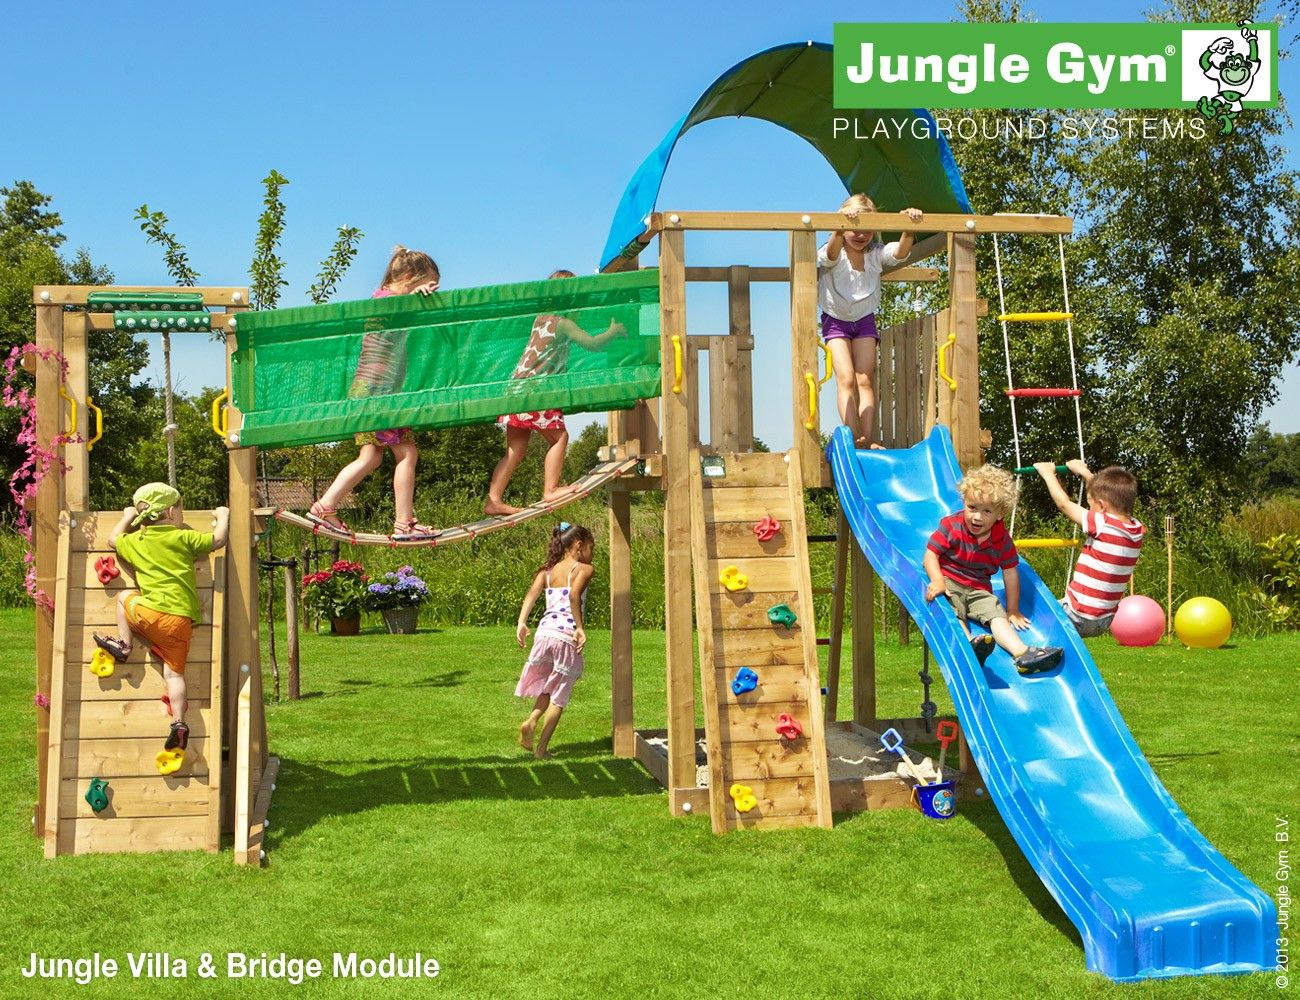 outdoor play equipment by jungle gym jungle villa jungle gym jungle gym kids climbing. Black Bedroom Furniture Sets. Home Design Ideas